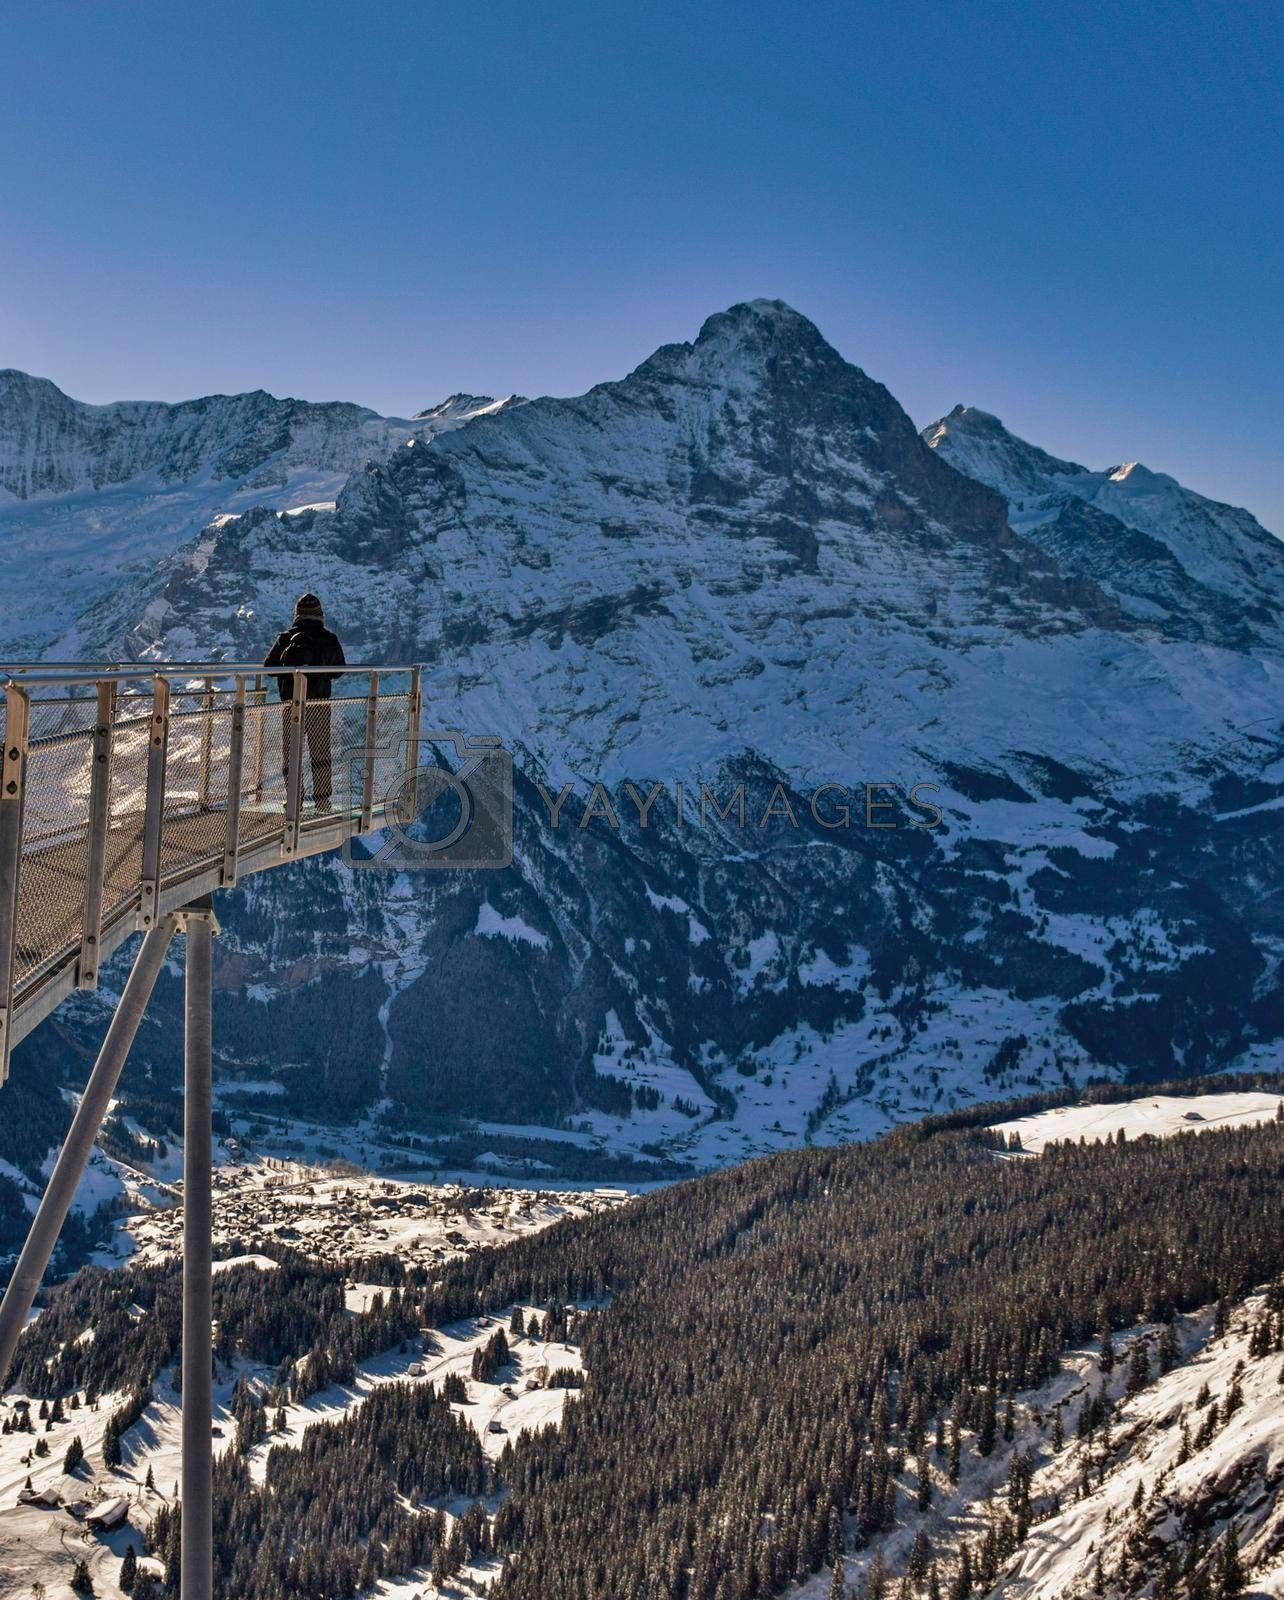 an observation deck named First Cliff Walk on top of First above Grindelwald, Bernese Oberland, Switzerland, Beautiful winter view of the North wall of the Eiger summit